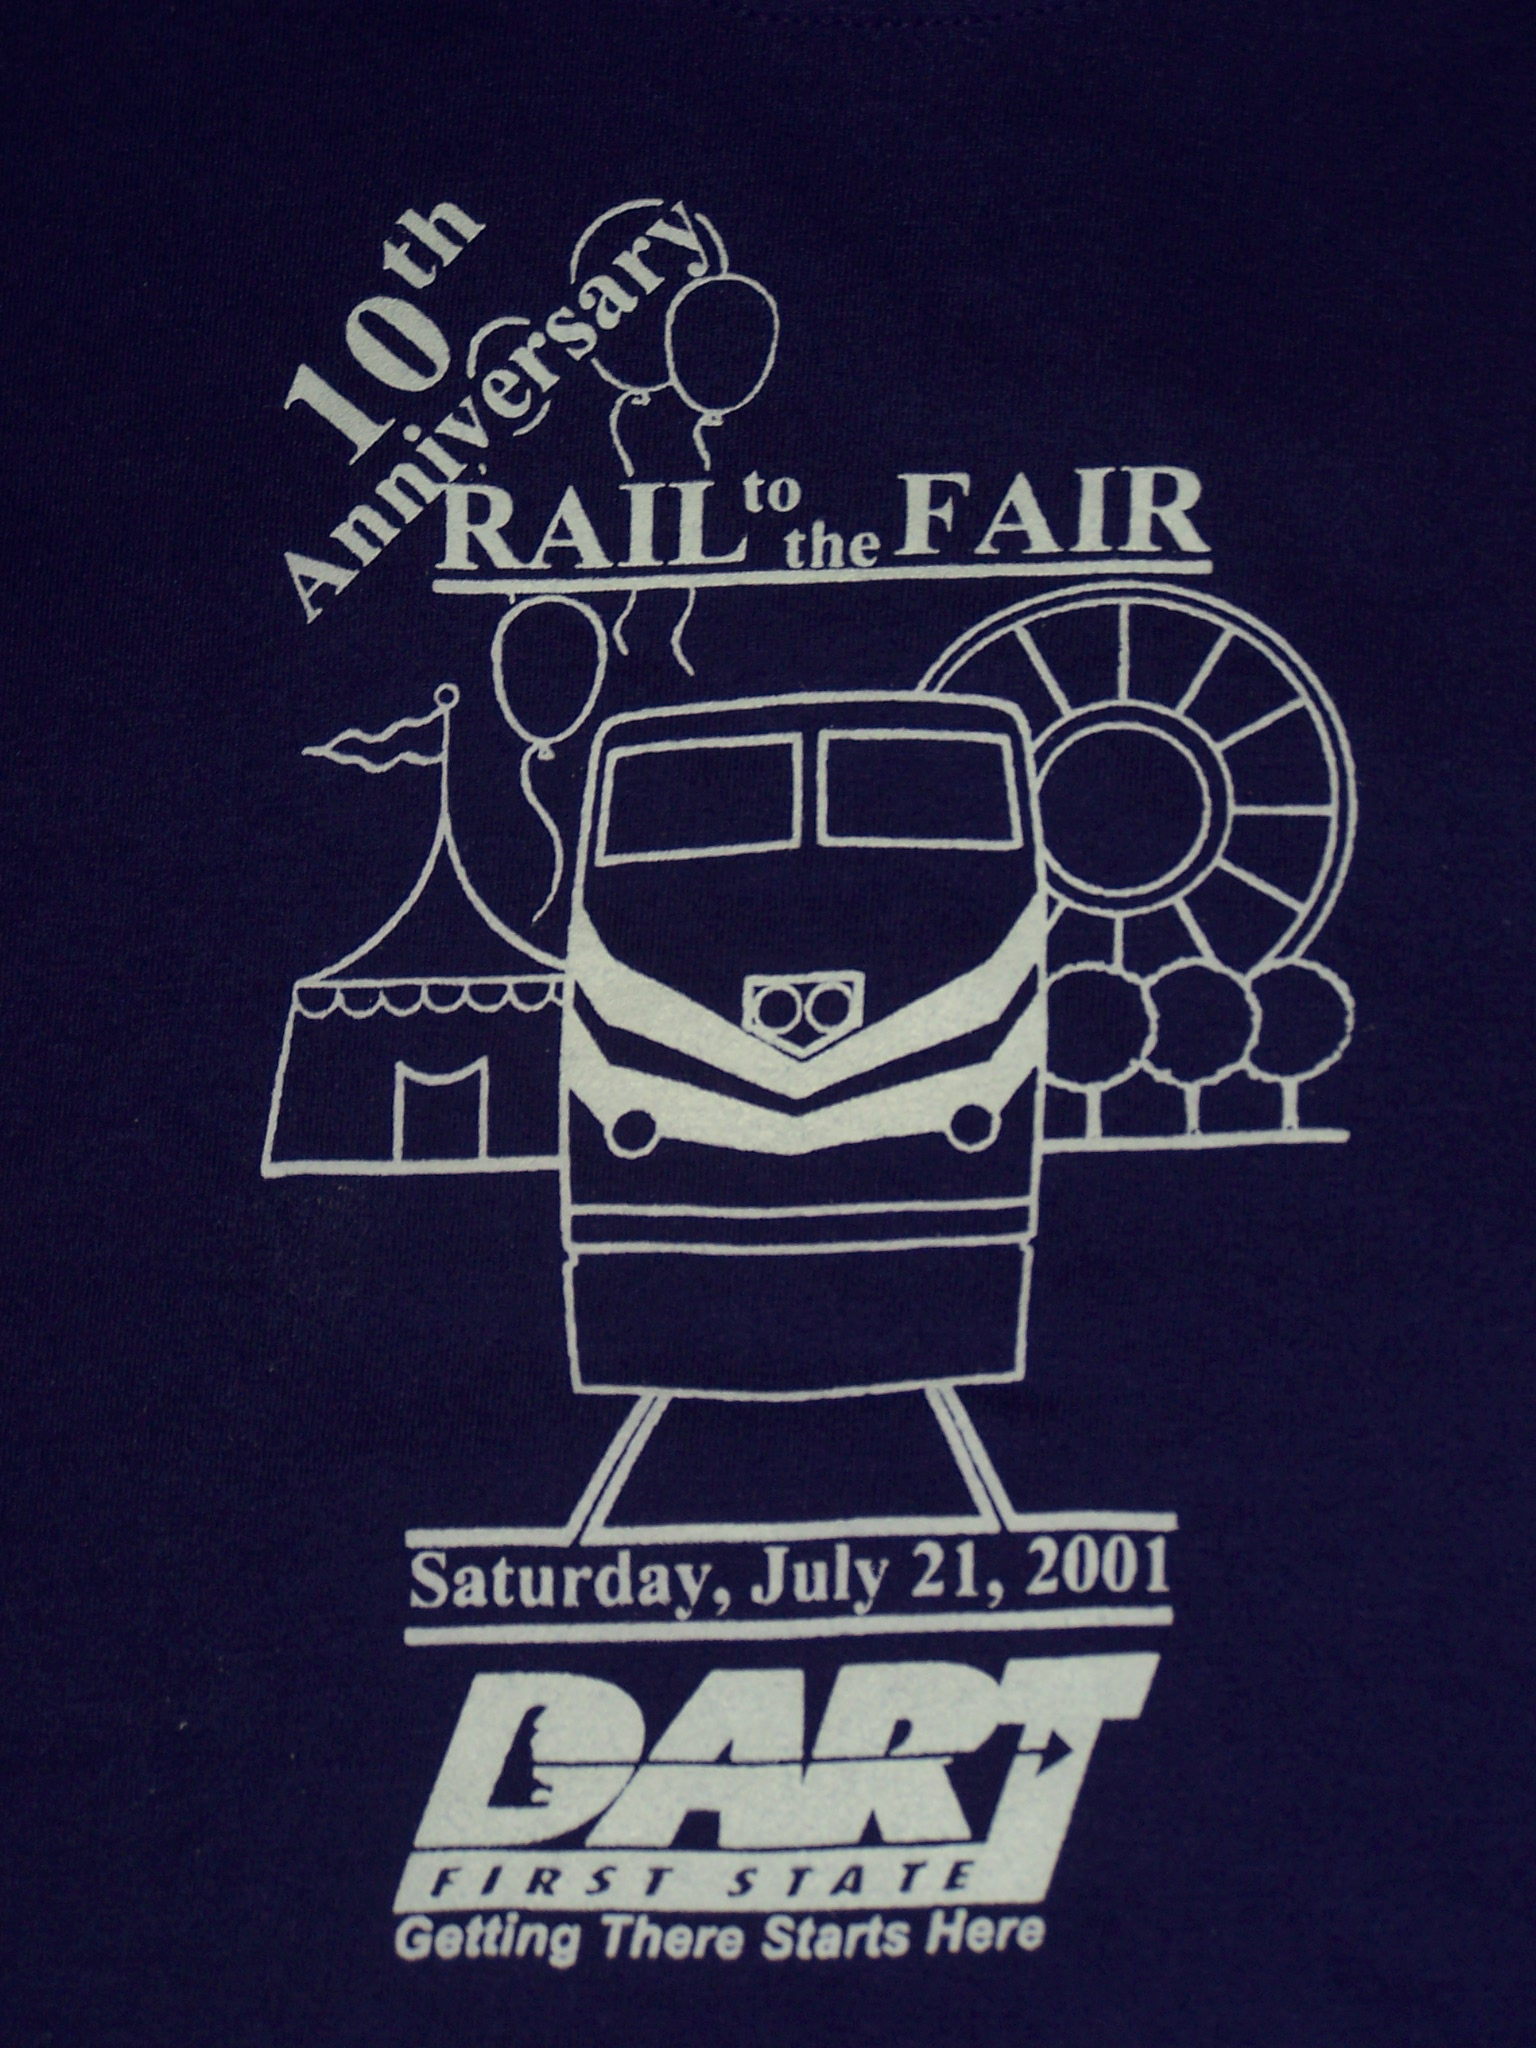 2001 Rail to the Fair tee shirt